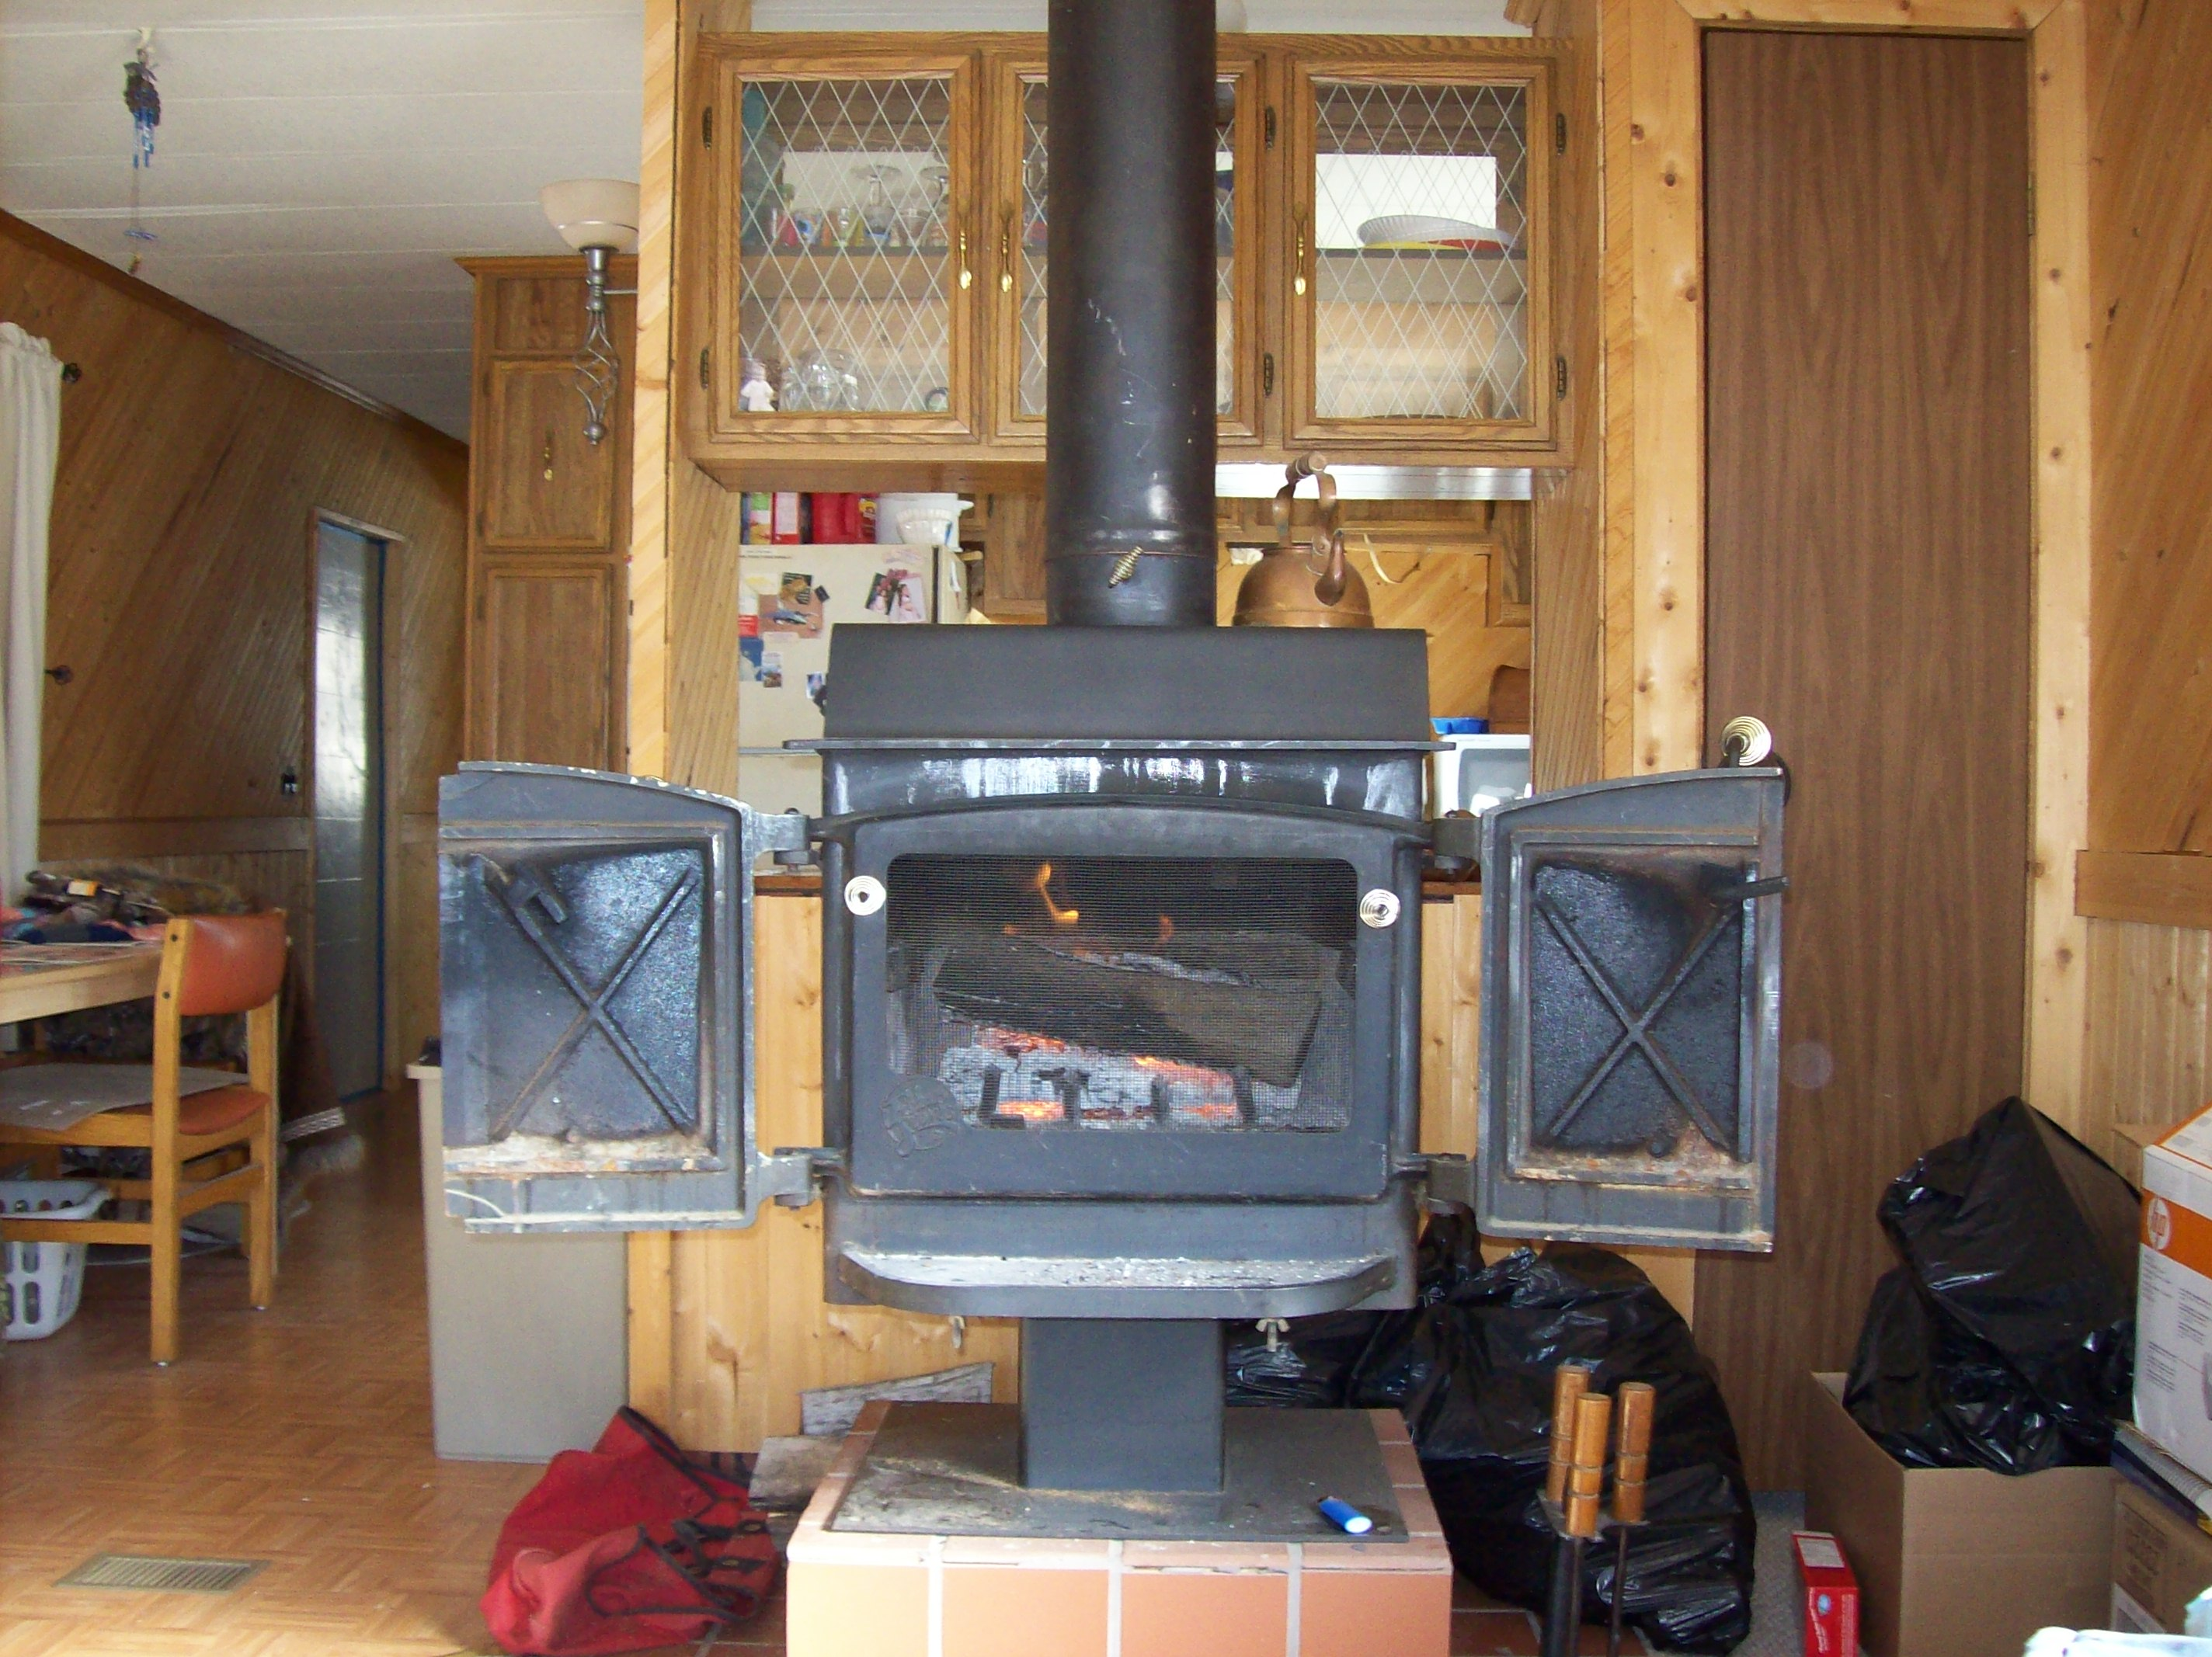 Picture of stove 001.jpg